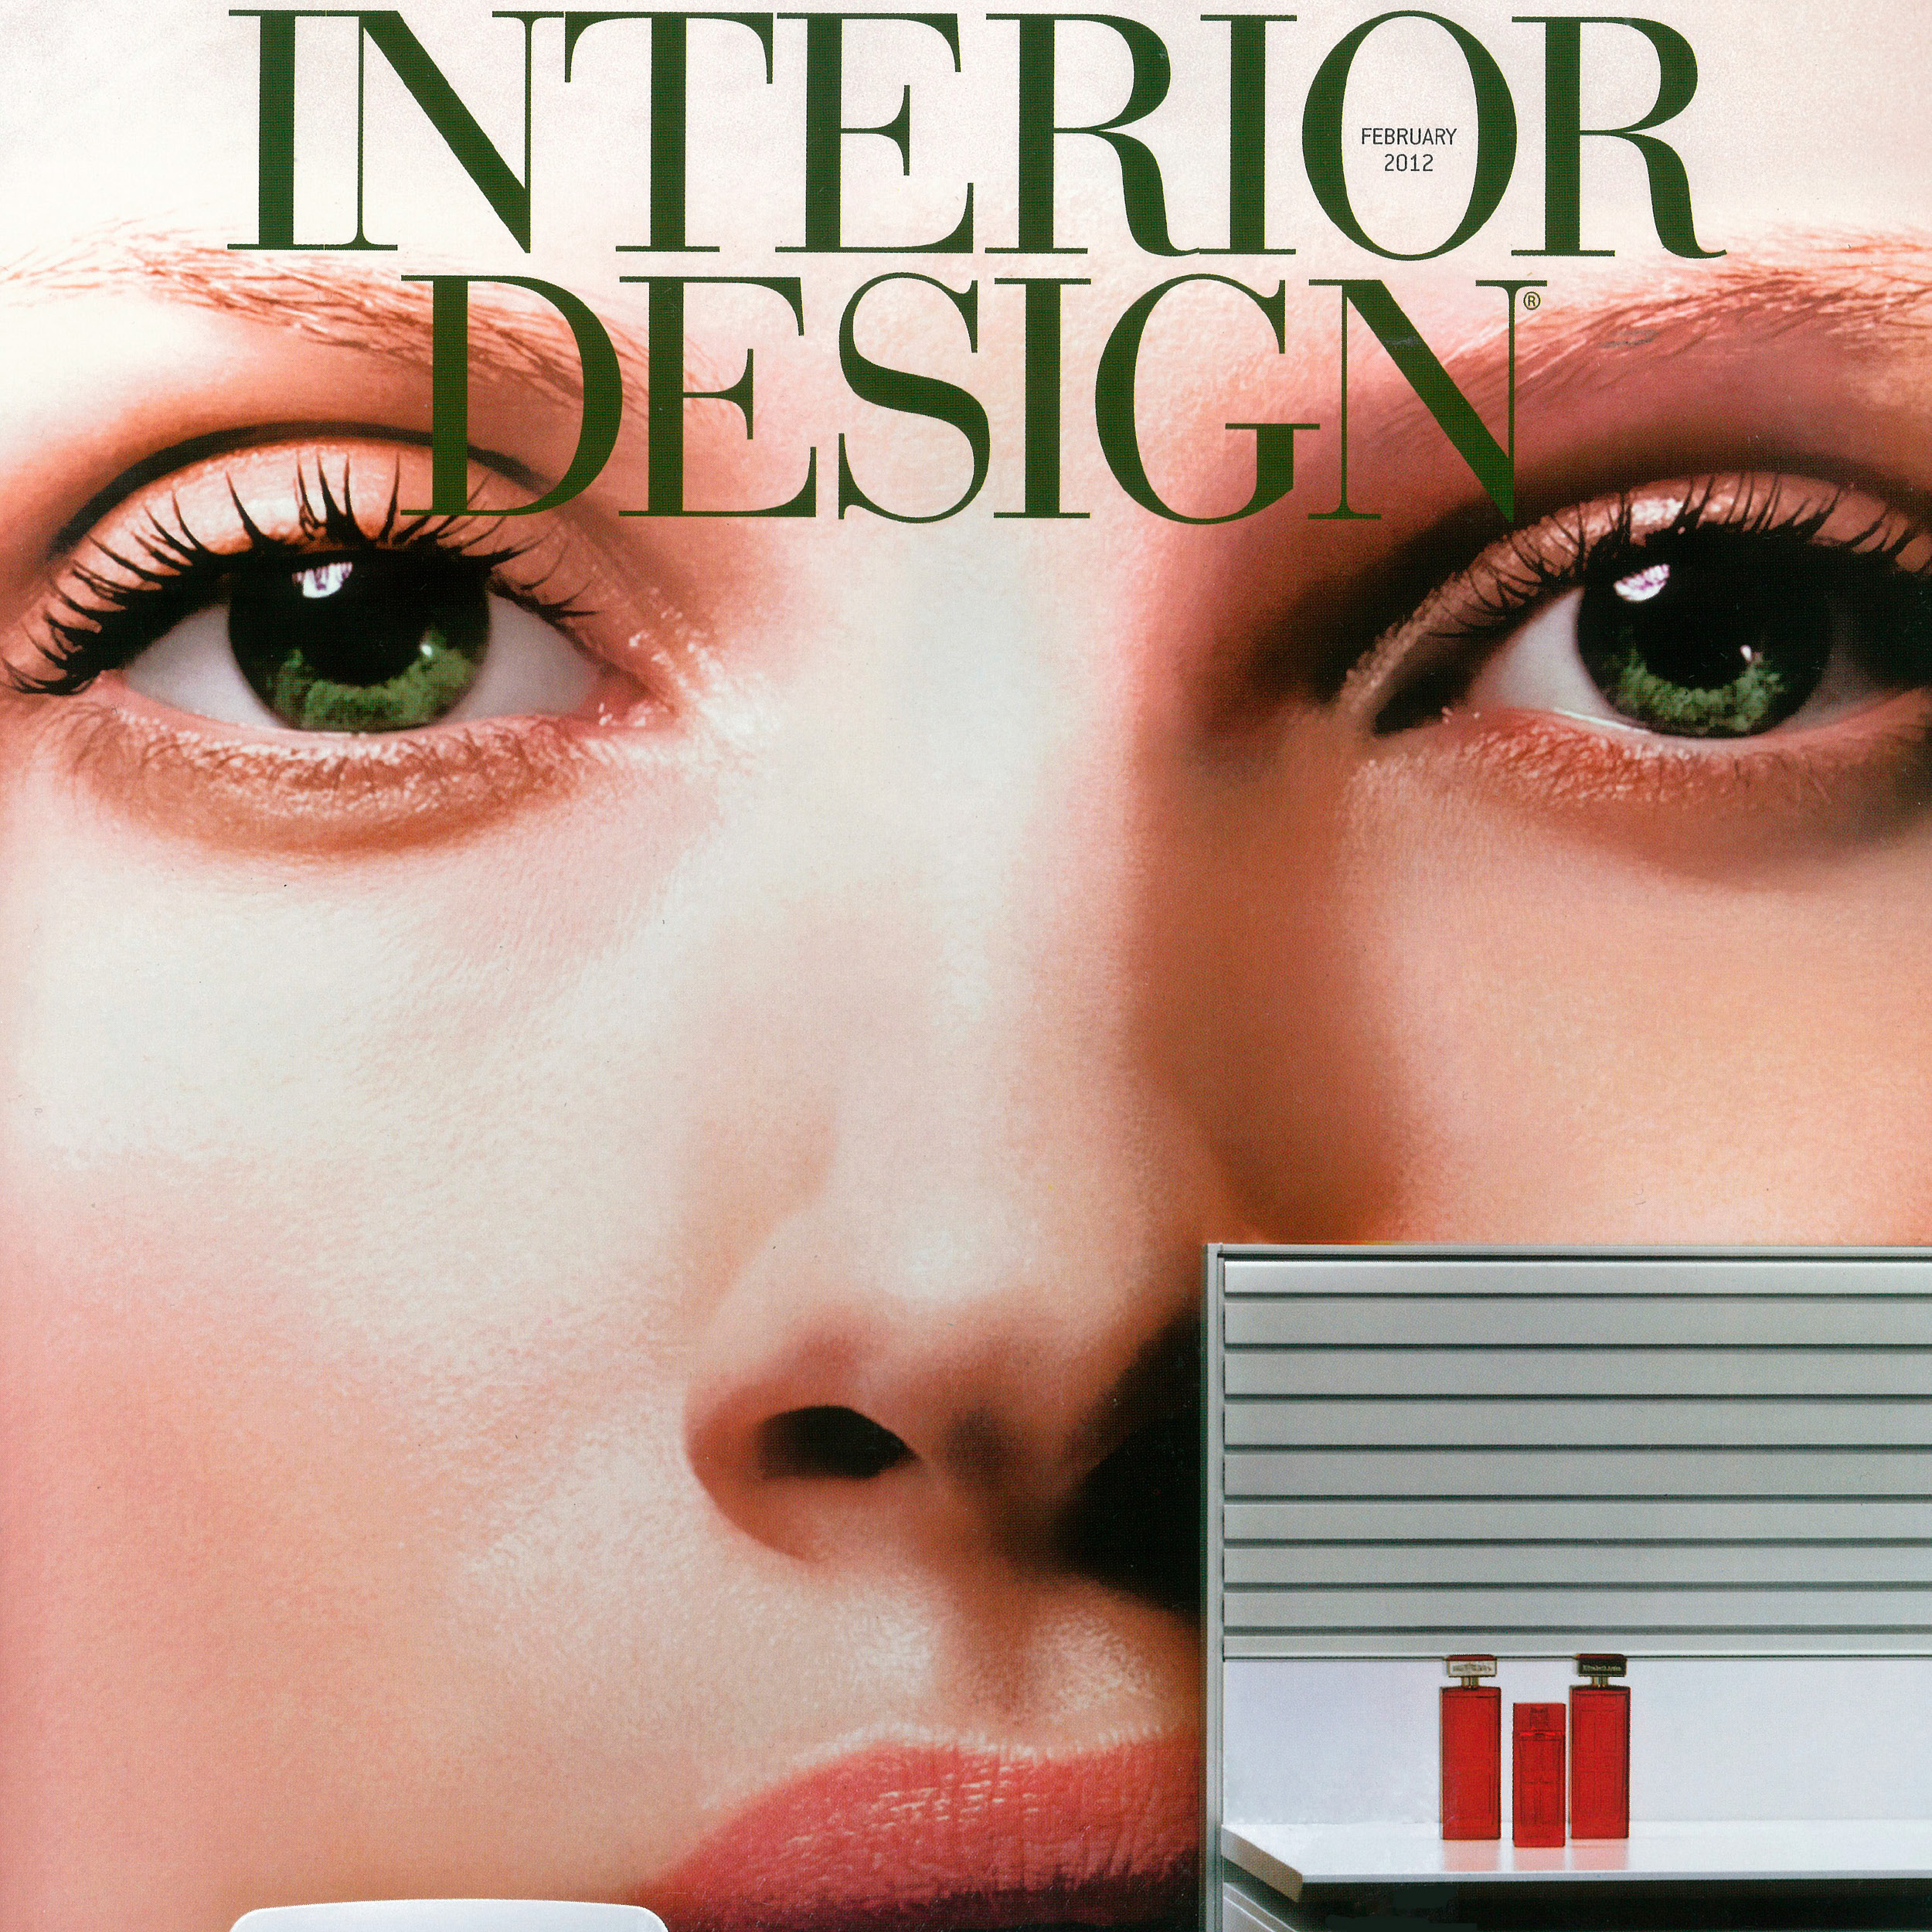 cover of Interior Design magazine February 2012 issue